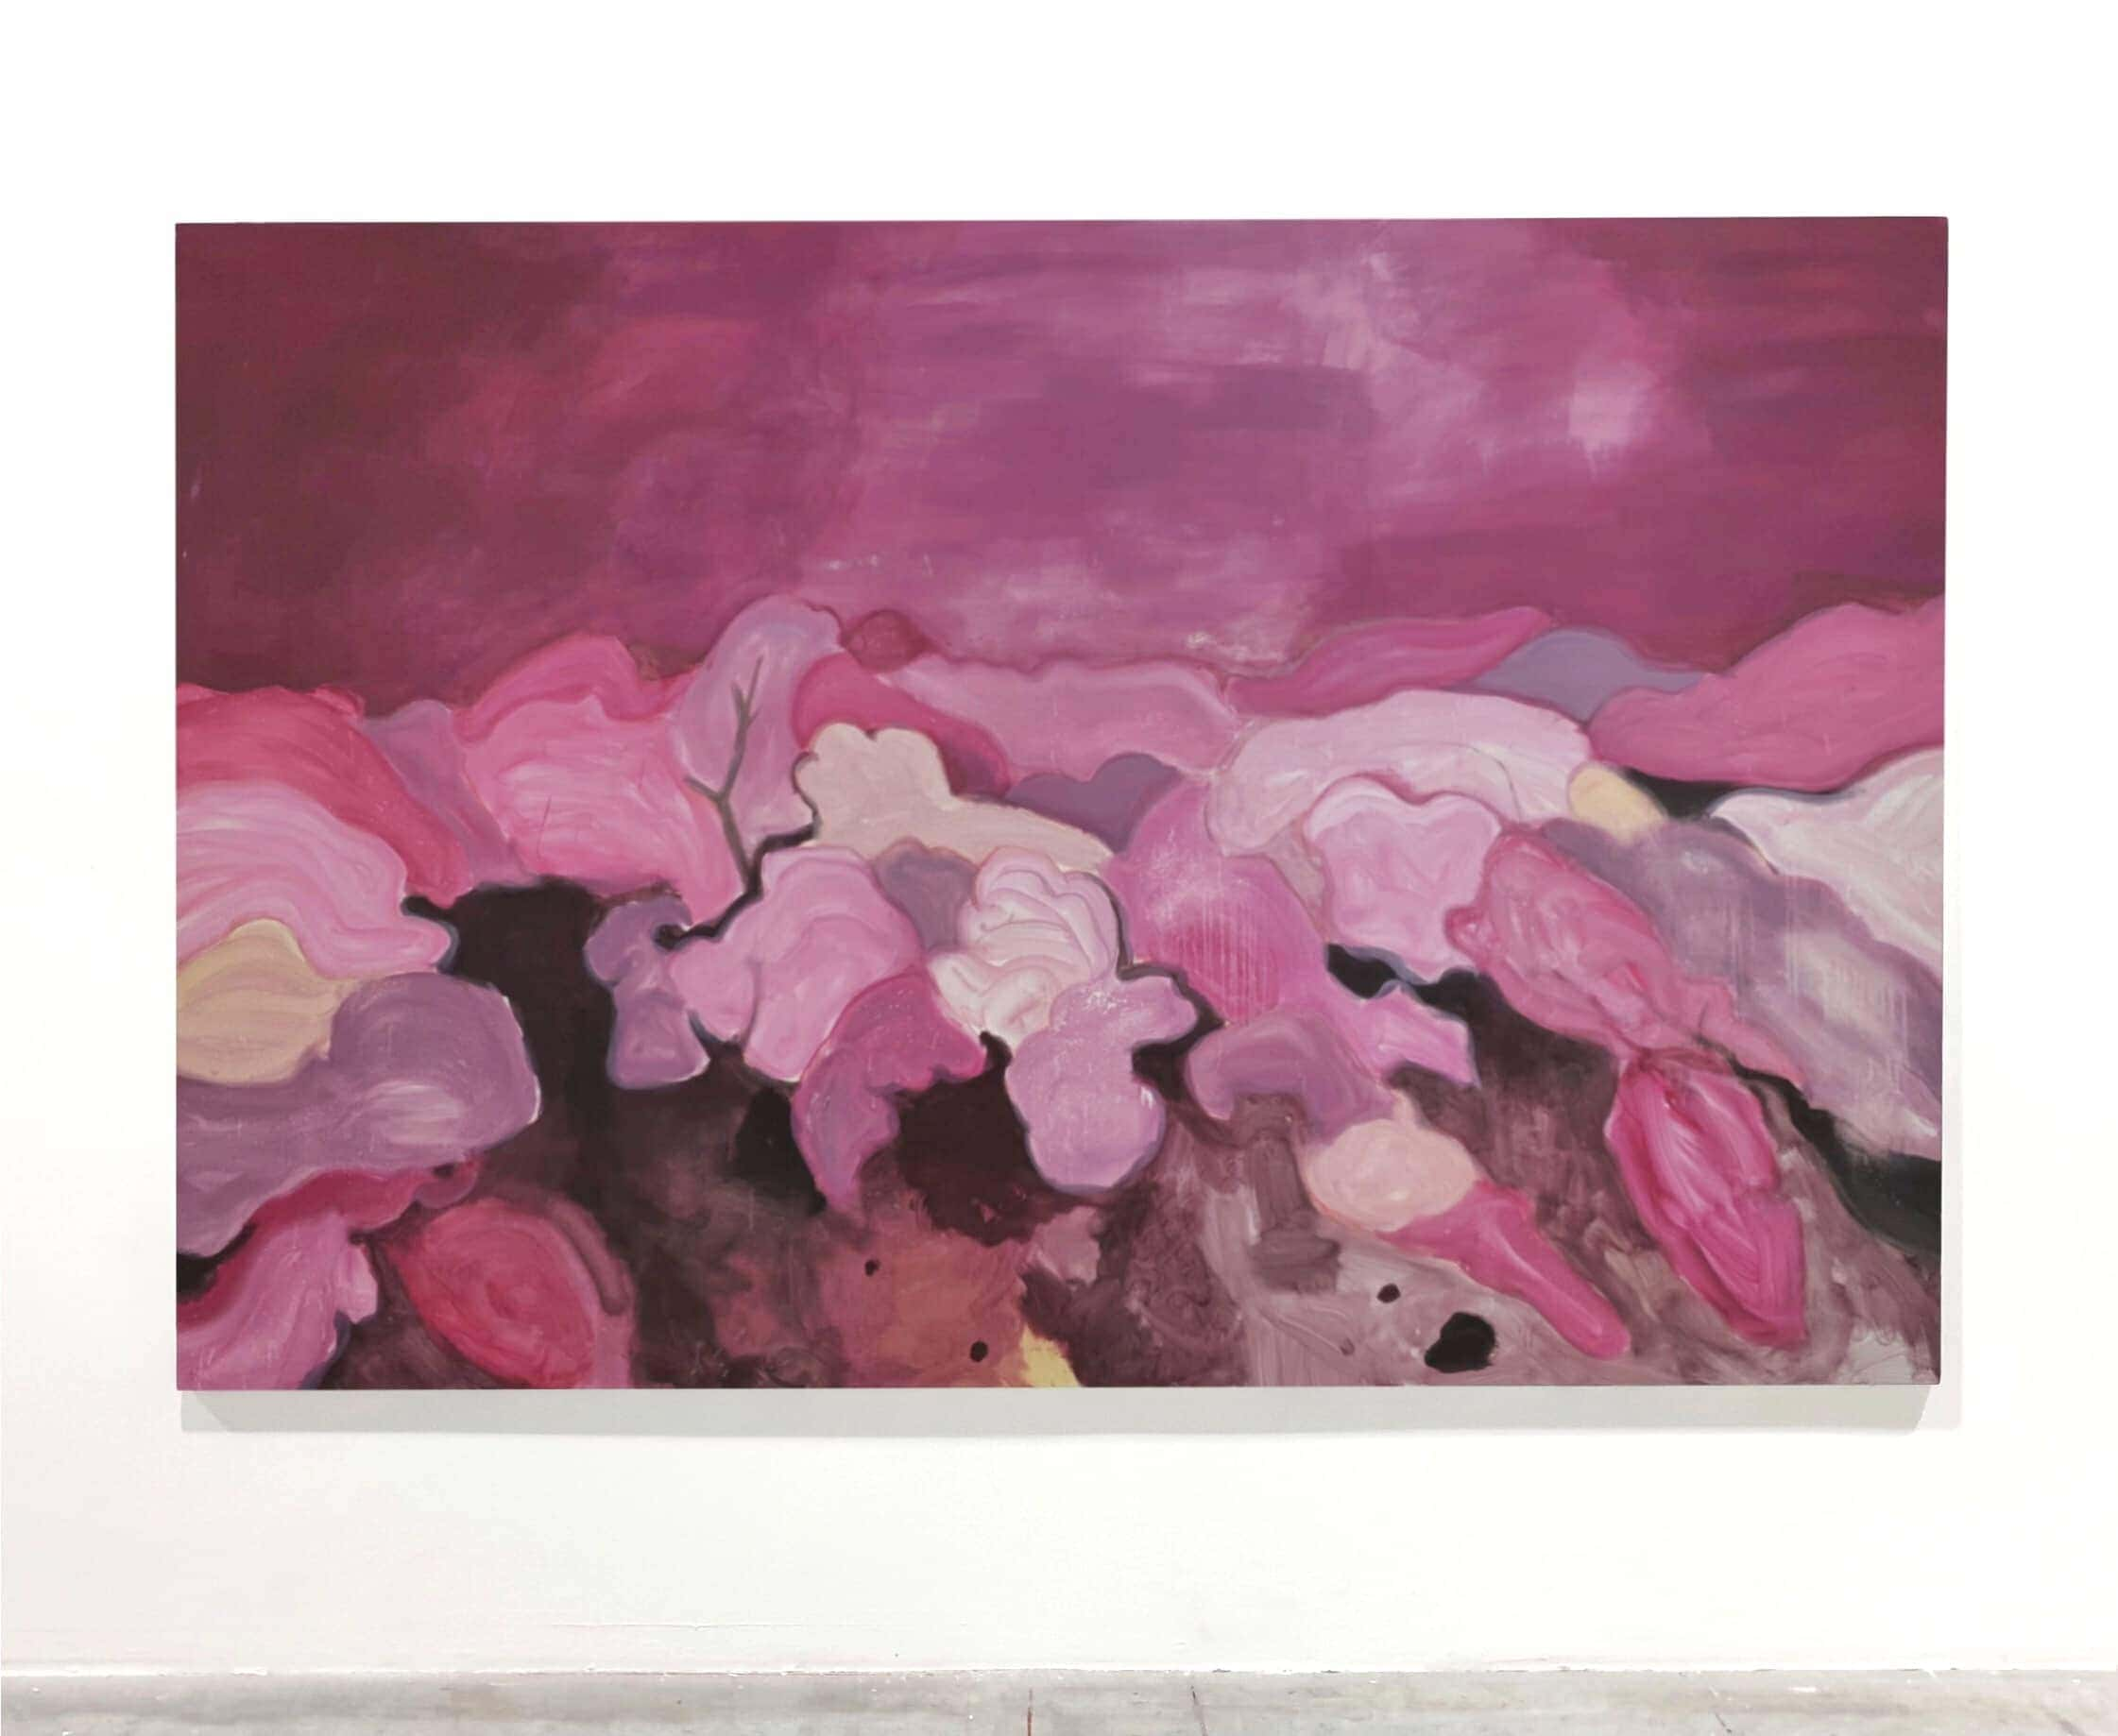 Paysage 7 300×200 cm acrylic oil and pastel on canvas 2019 Lou Ros